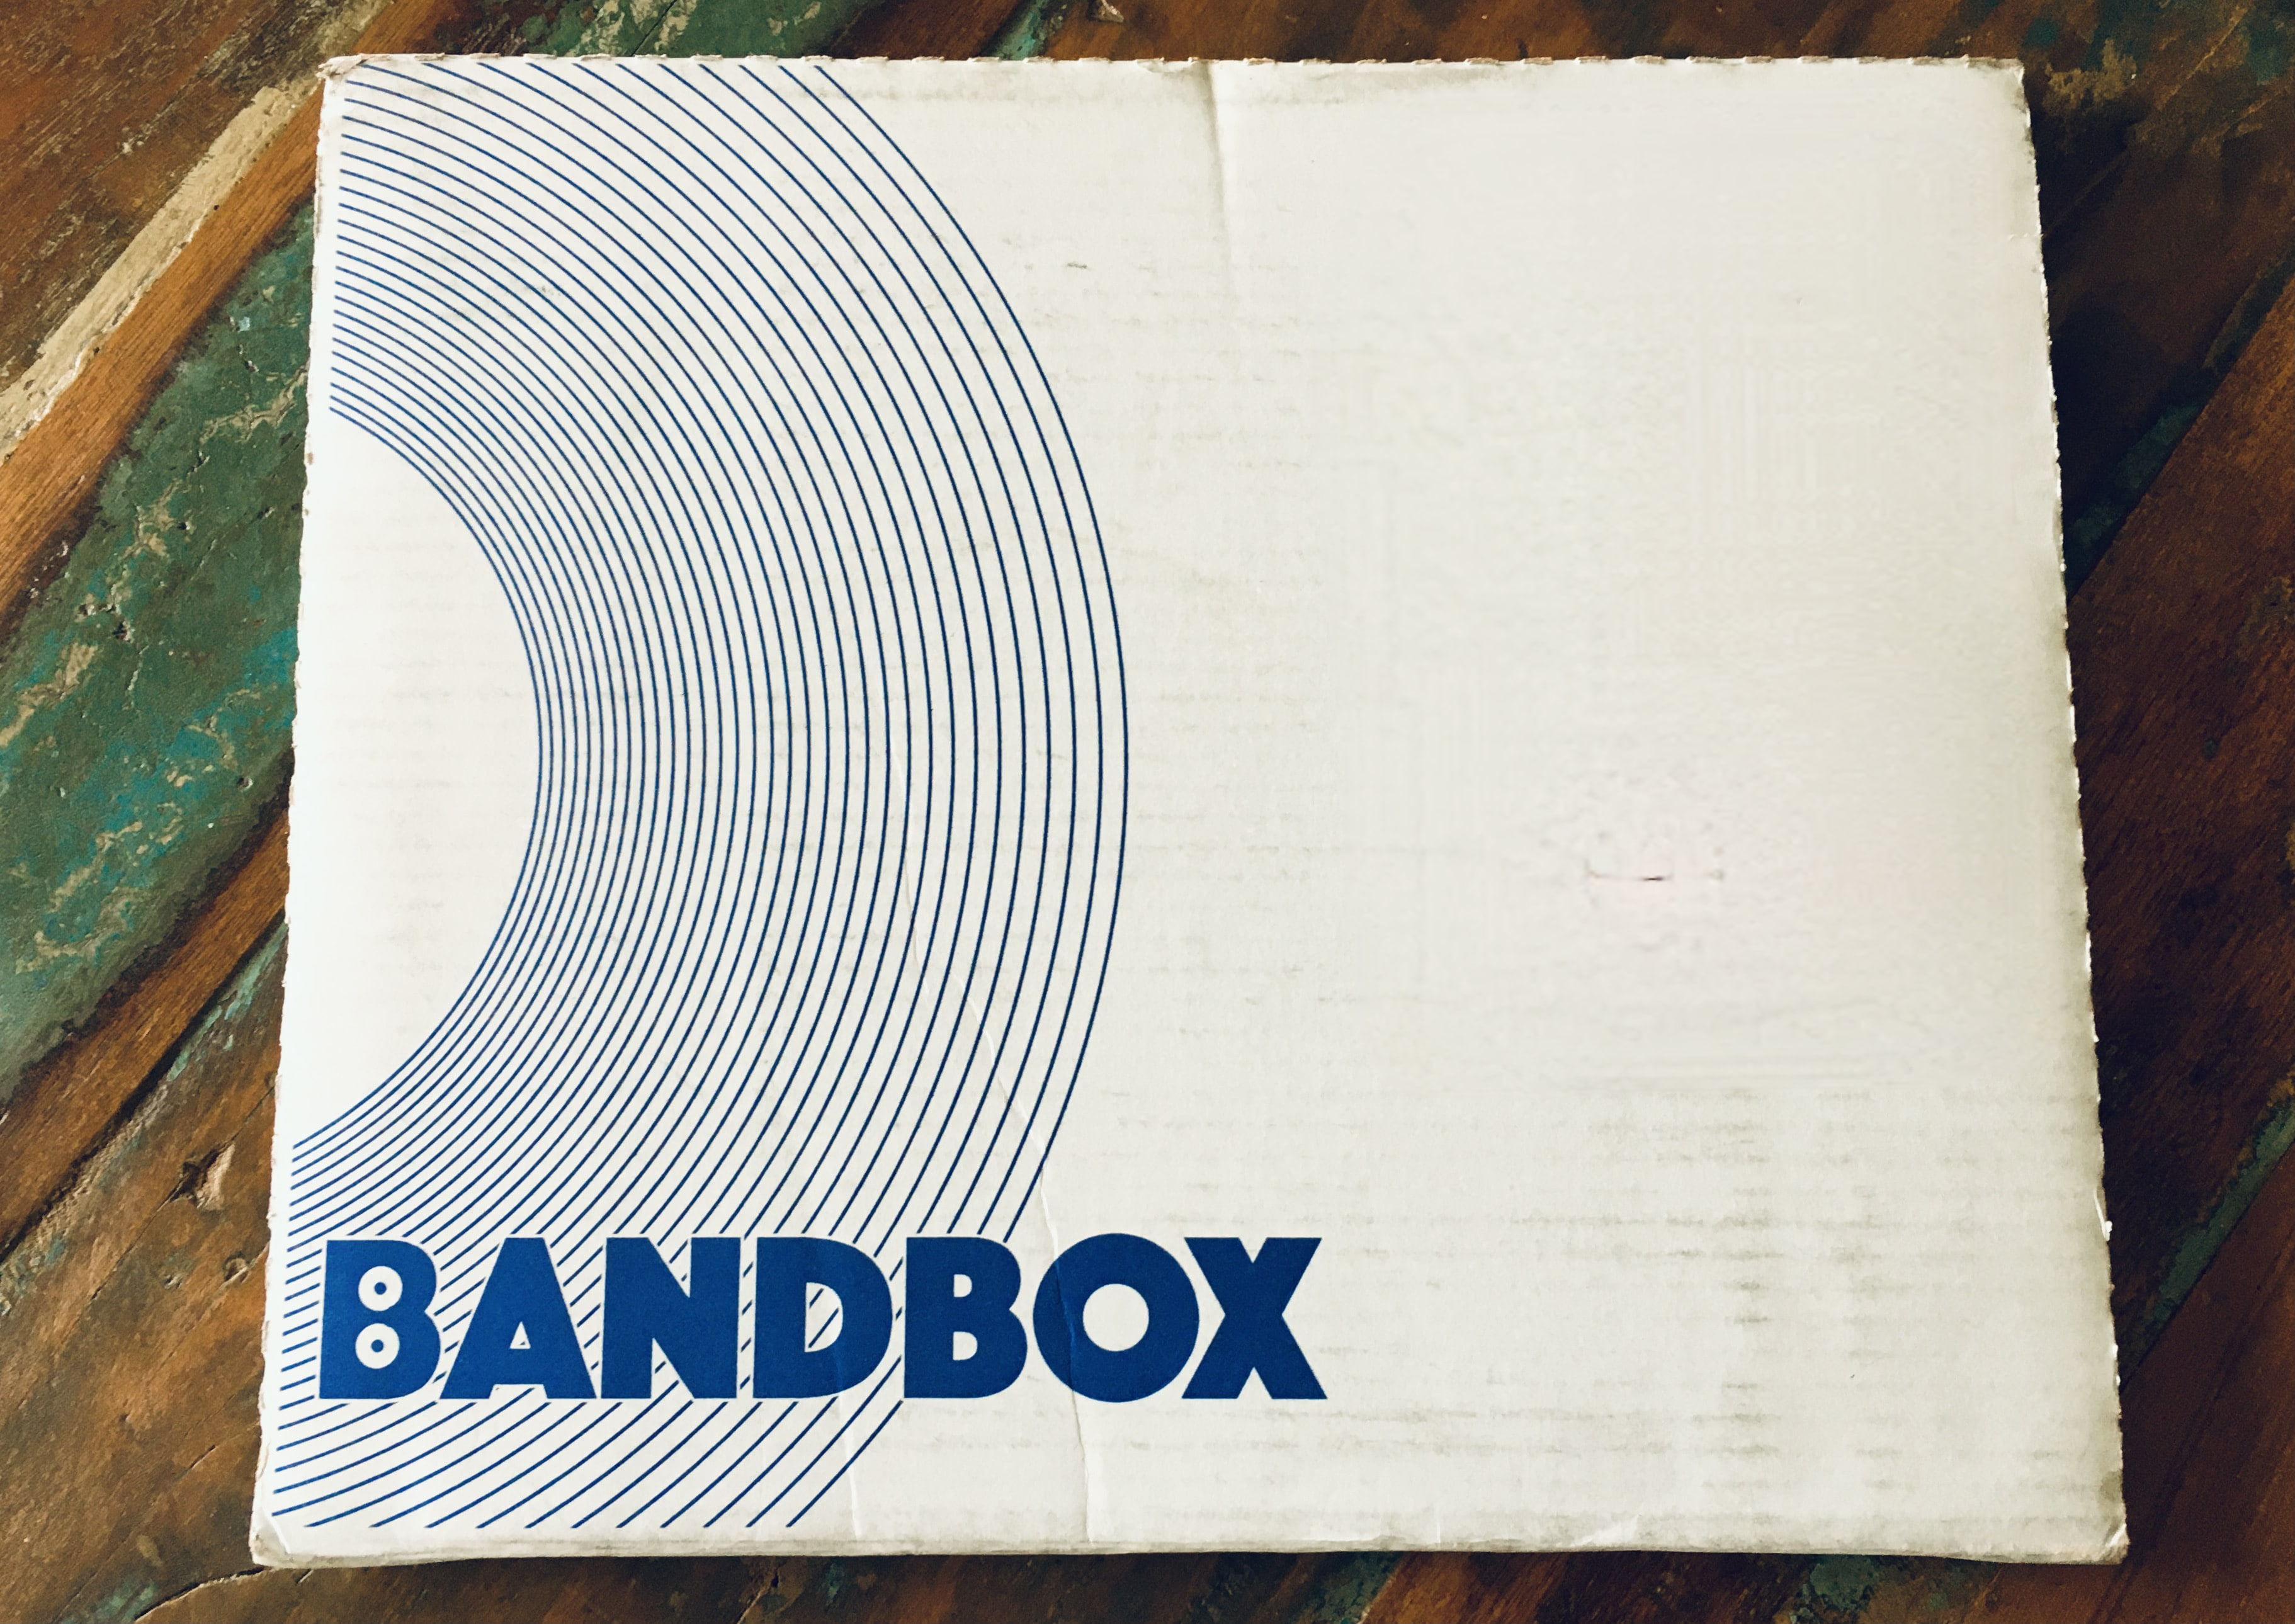 Geek insider, geekinsider, geekinsider. Com,, bandbox unboxed vol. 21 - the mountain goats, culture, featured, geek life, music, reviews